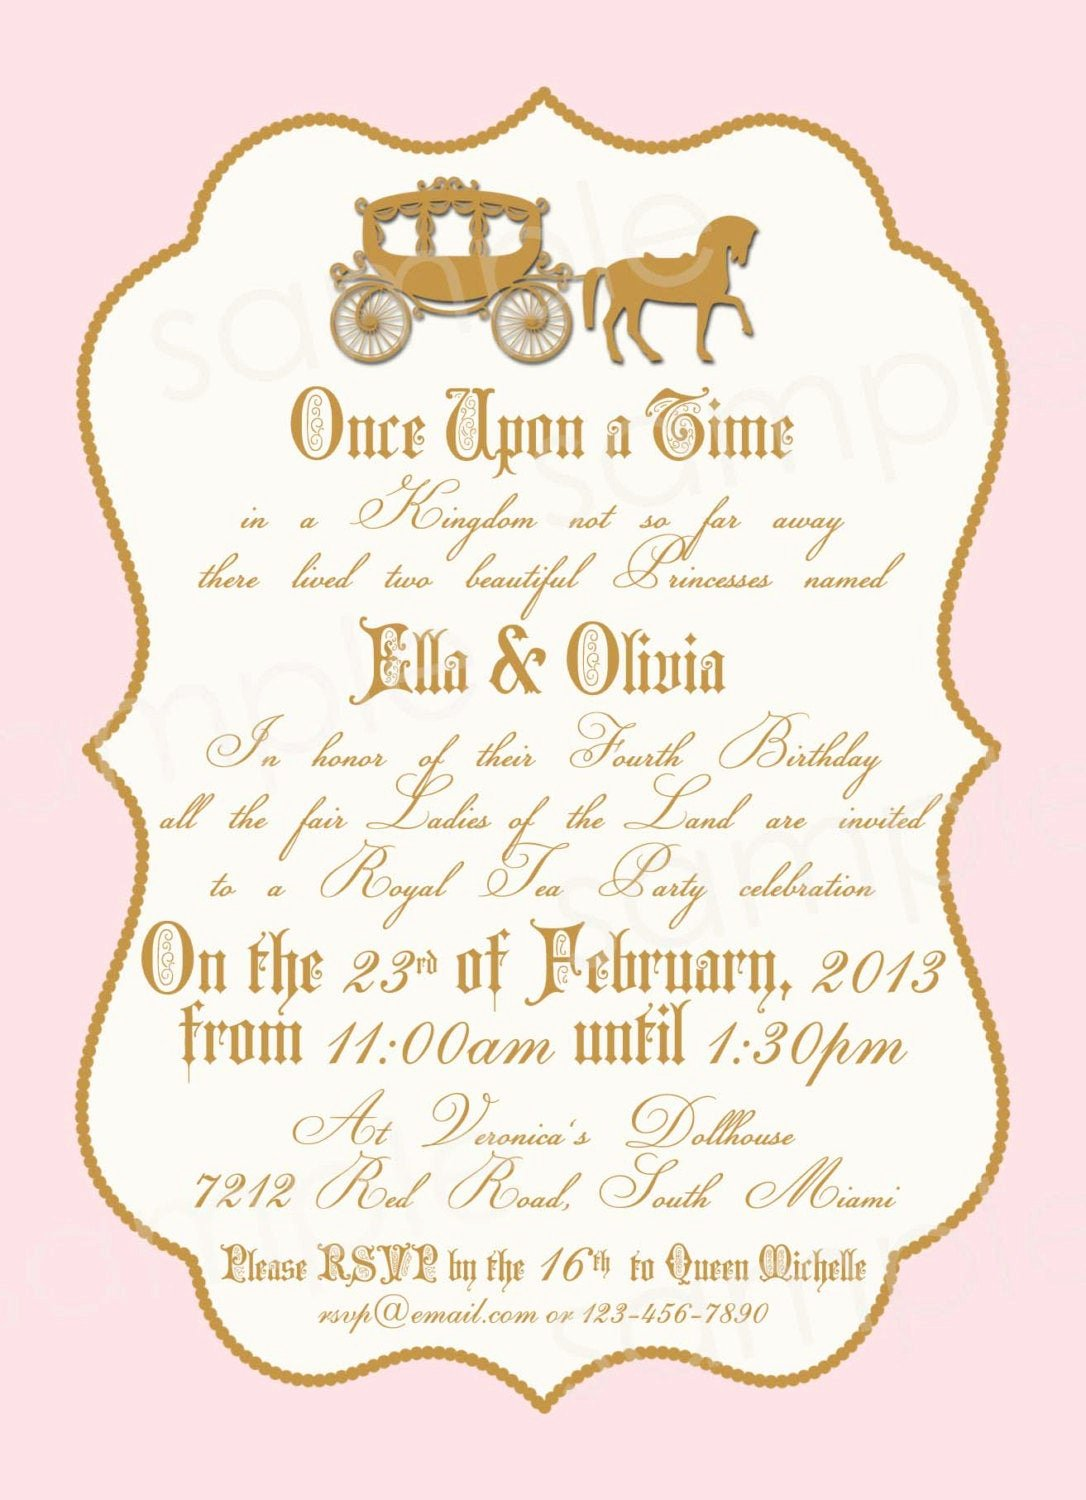 Princess Party Invitation Wording Awesome Royal Princess Birthday Party Invitation Diy by Modpoddesigns